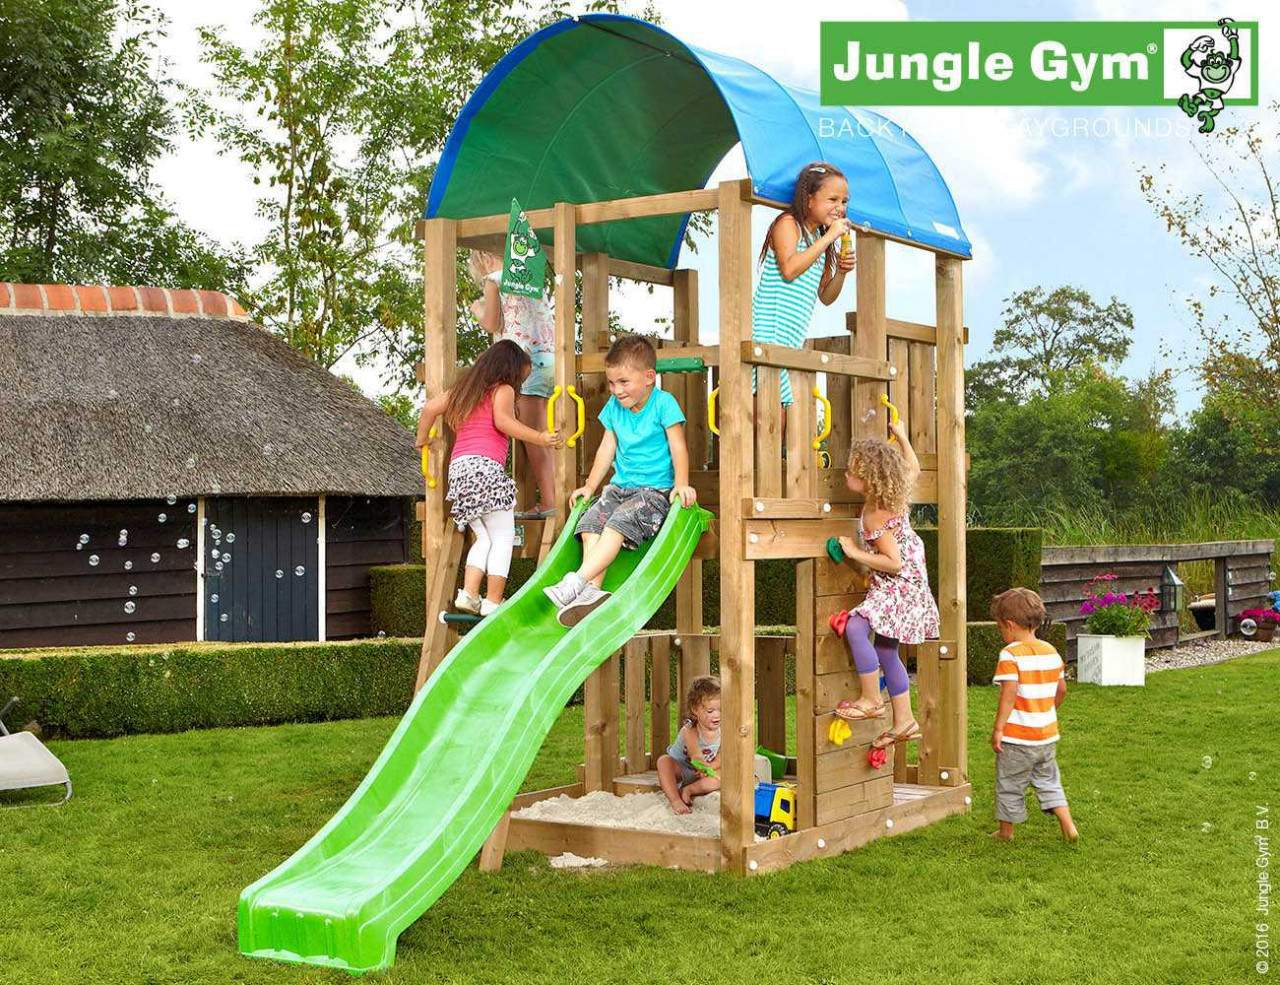 climbing frame with slide jungle farm greenc377l5iTLZyST 1280x1280